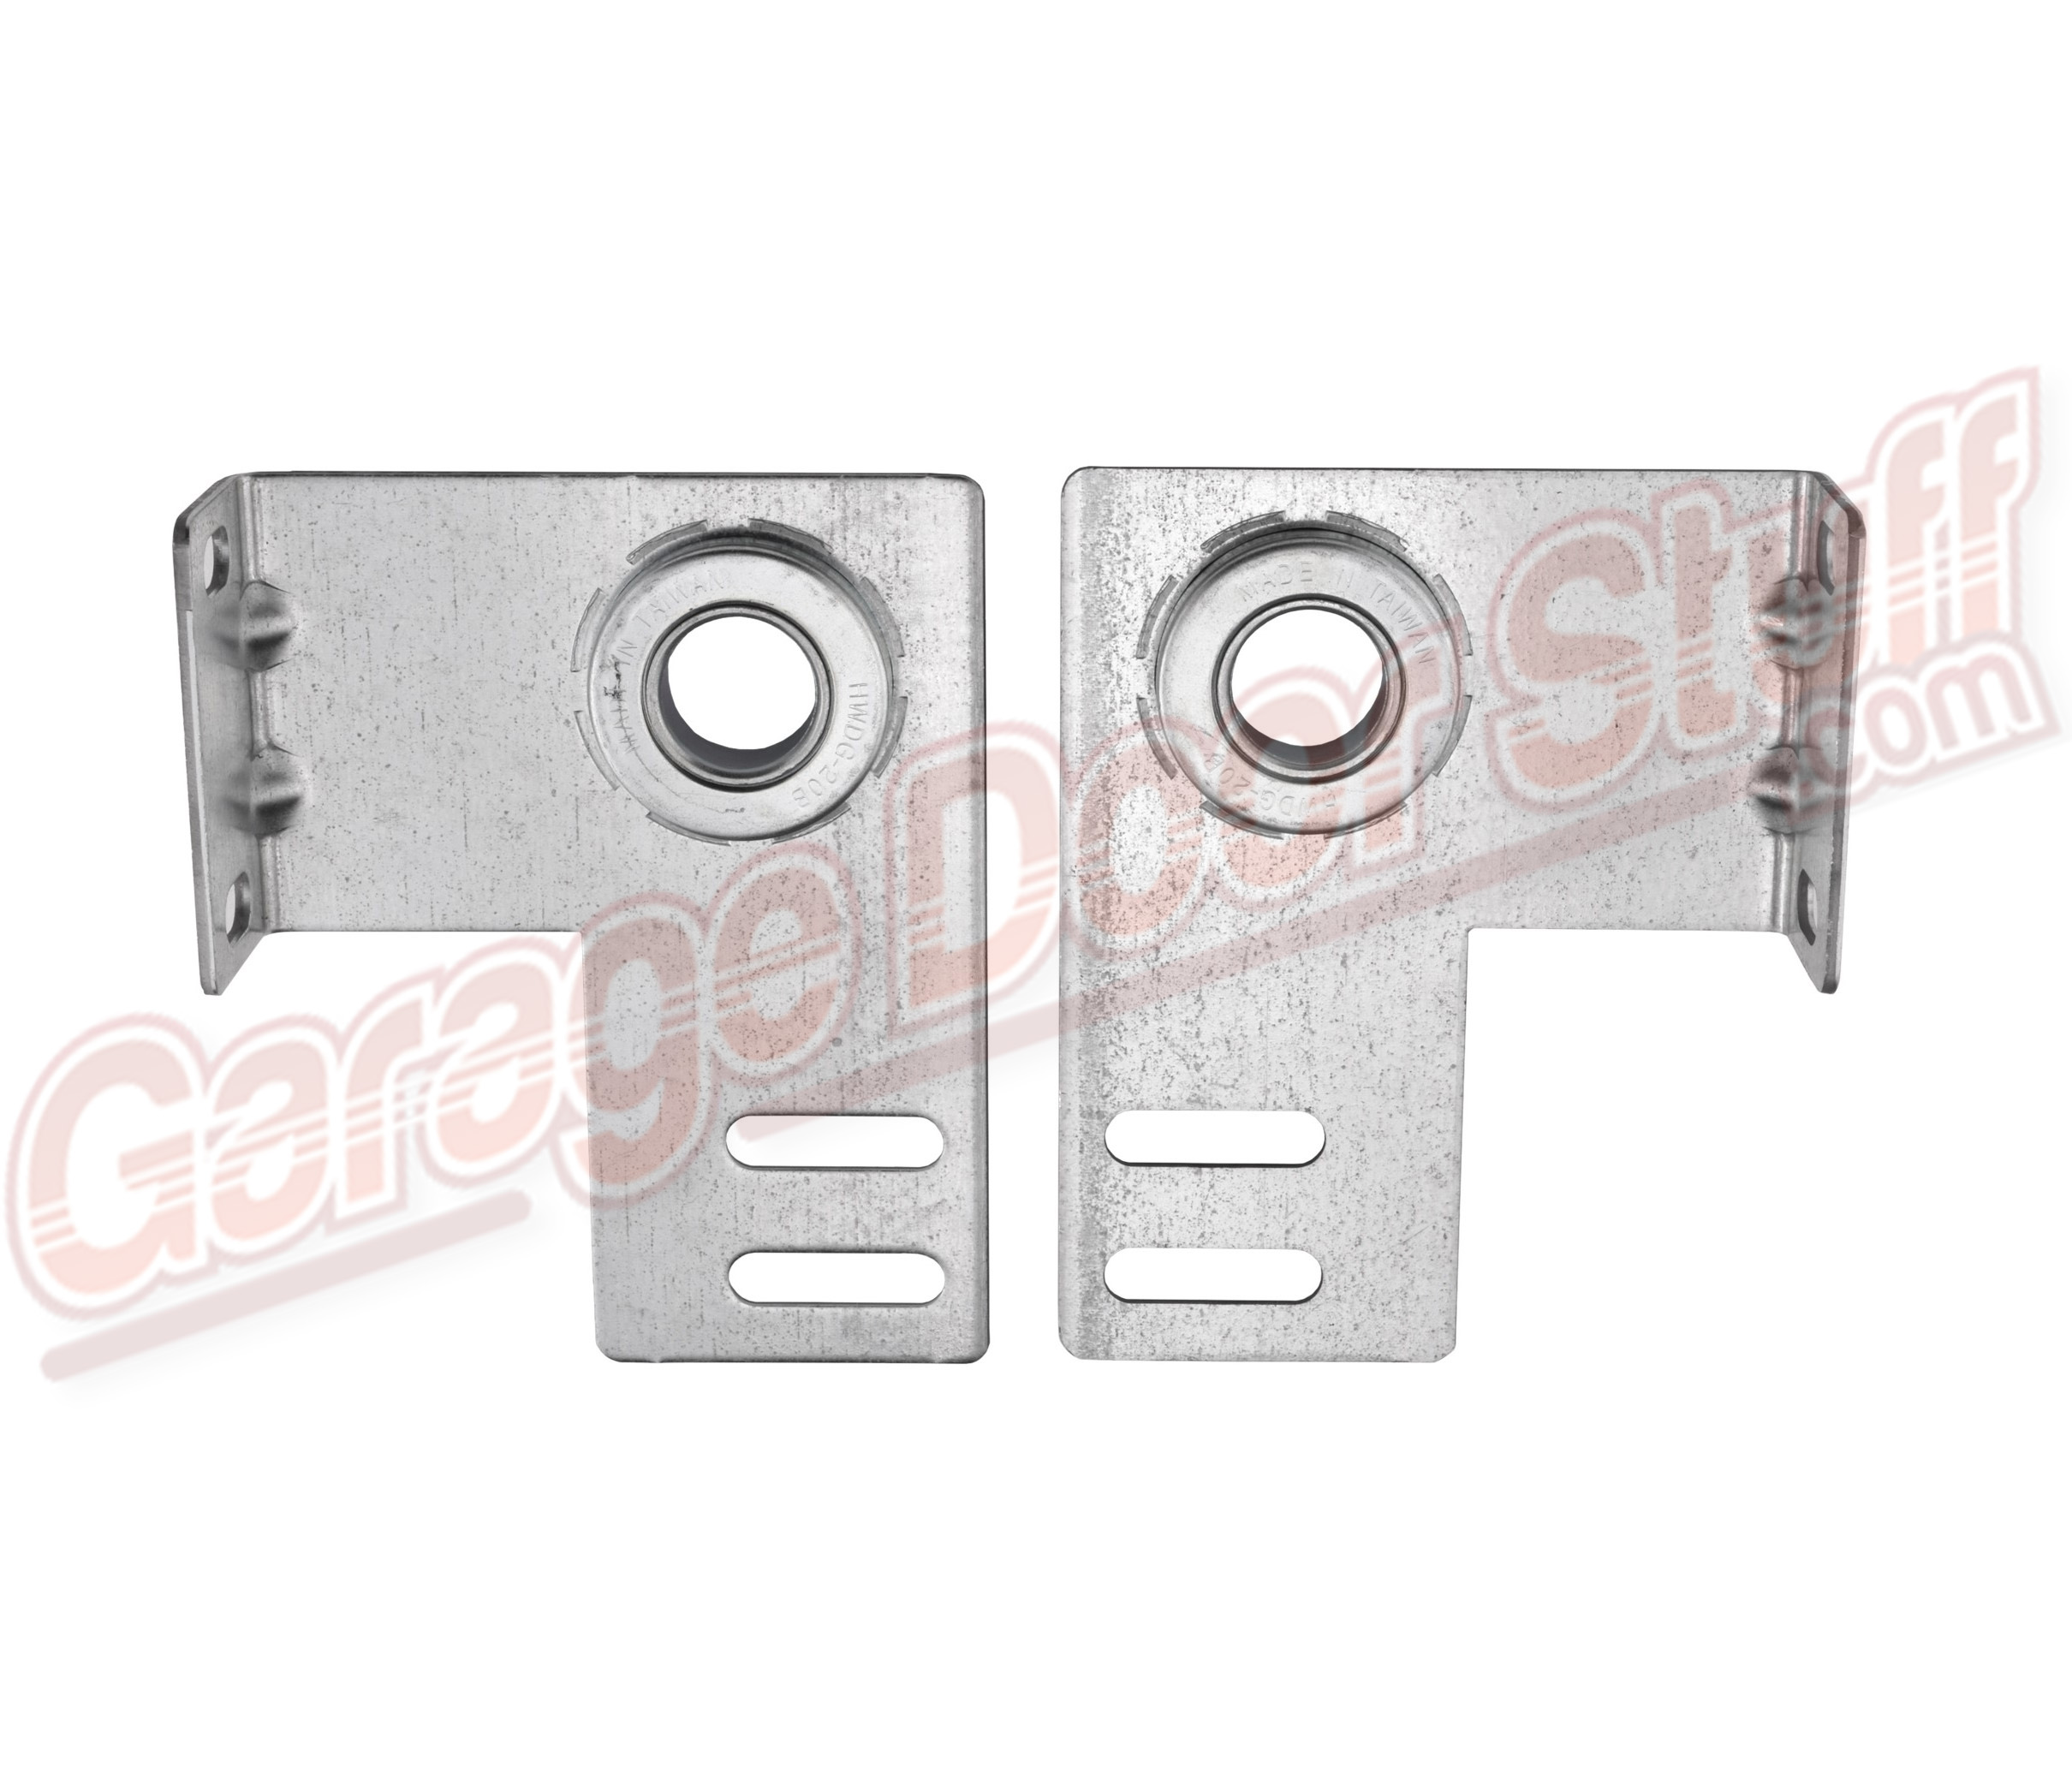 QTY 2 Garage Door Extension Spring Cable Adjustment Plate